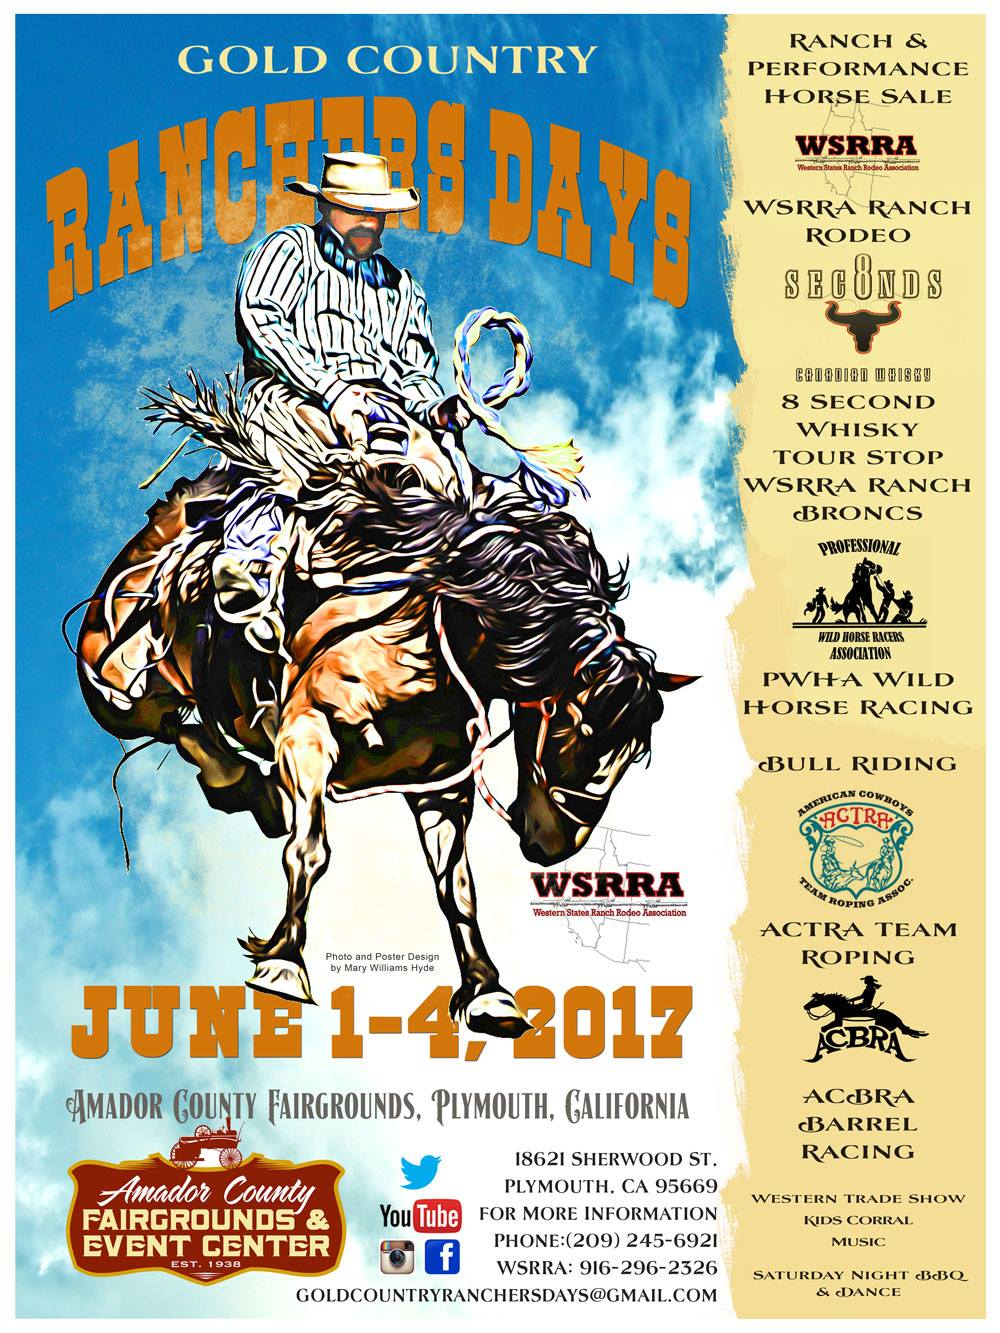 Gold Country Ranchers Days - June 1-4, 2017